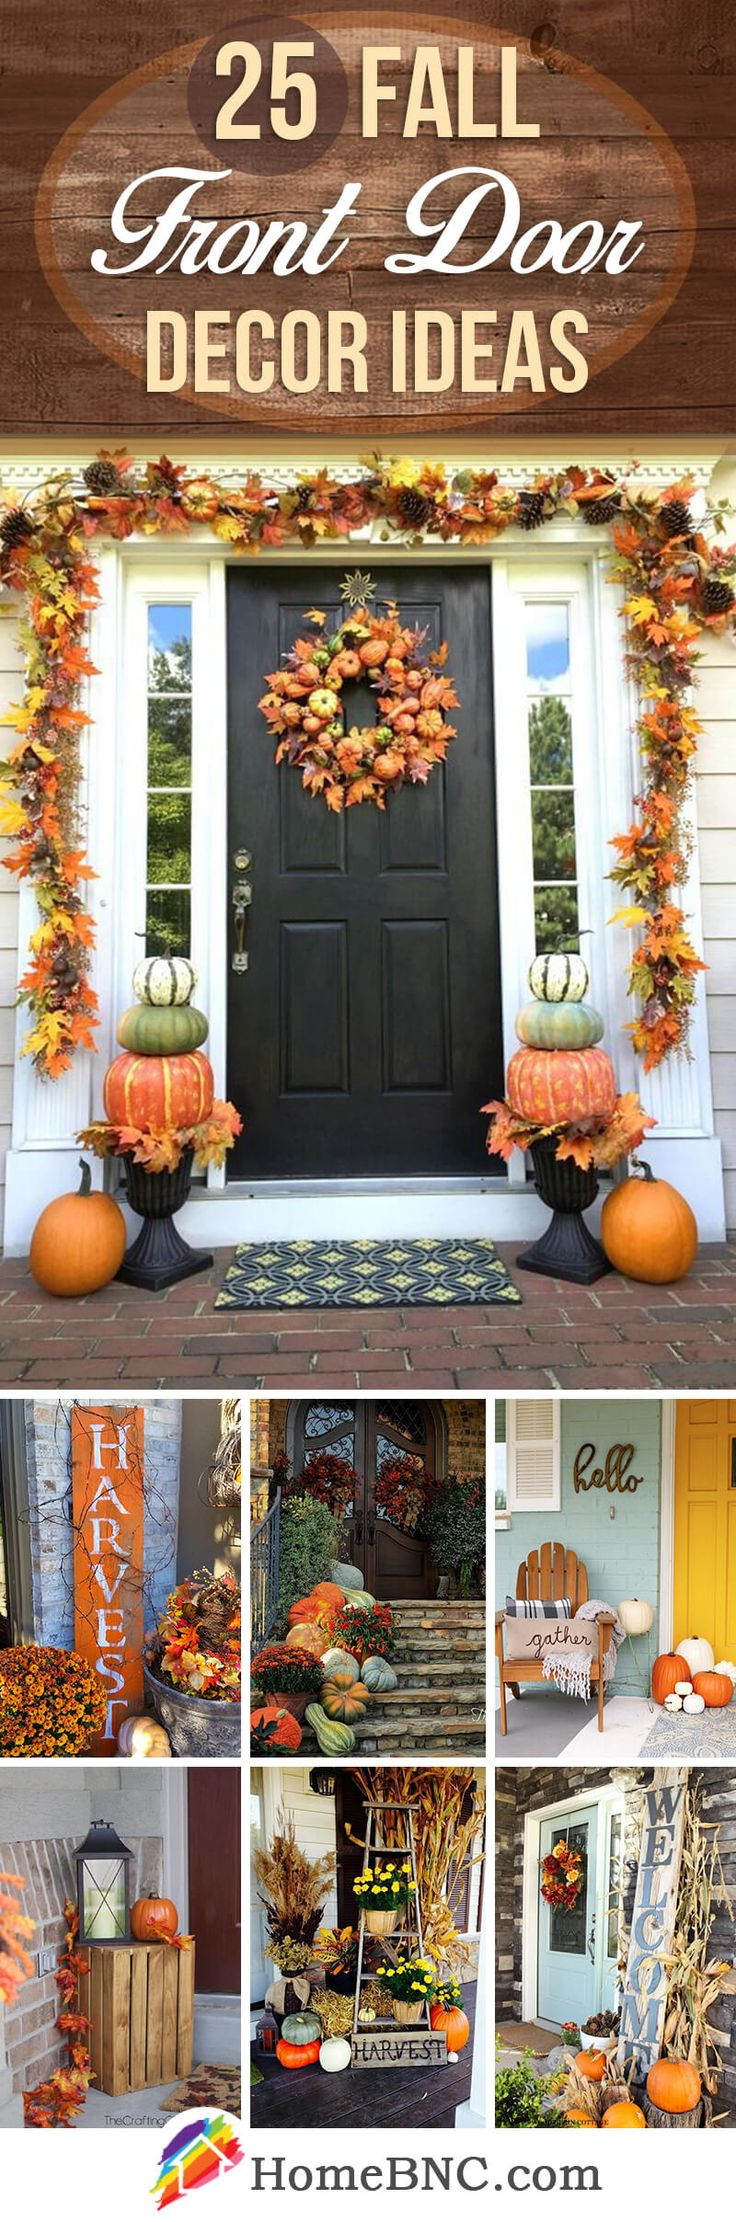 Thanksgiving front door decorations - 25 Adorable Fall Front Door Decor Ideas To Make A Fantastic First Impression